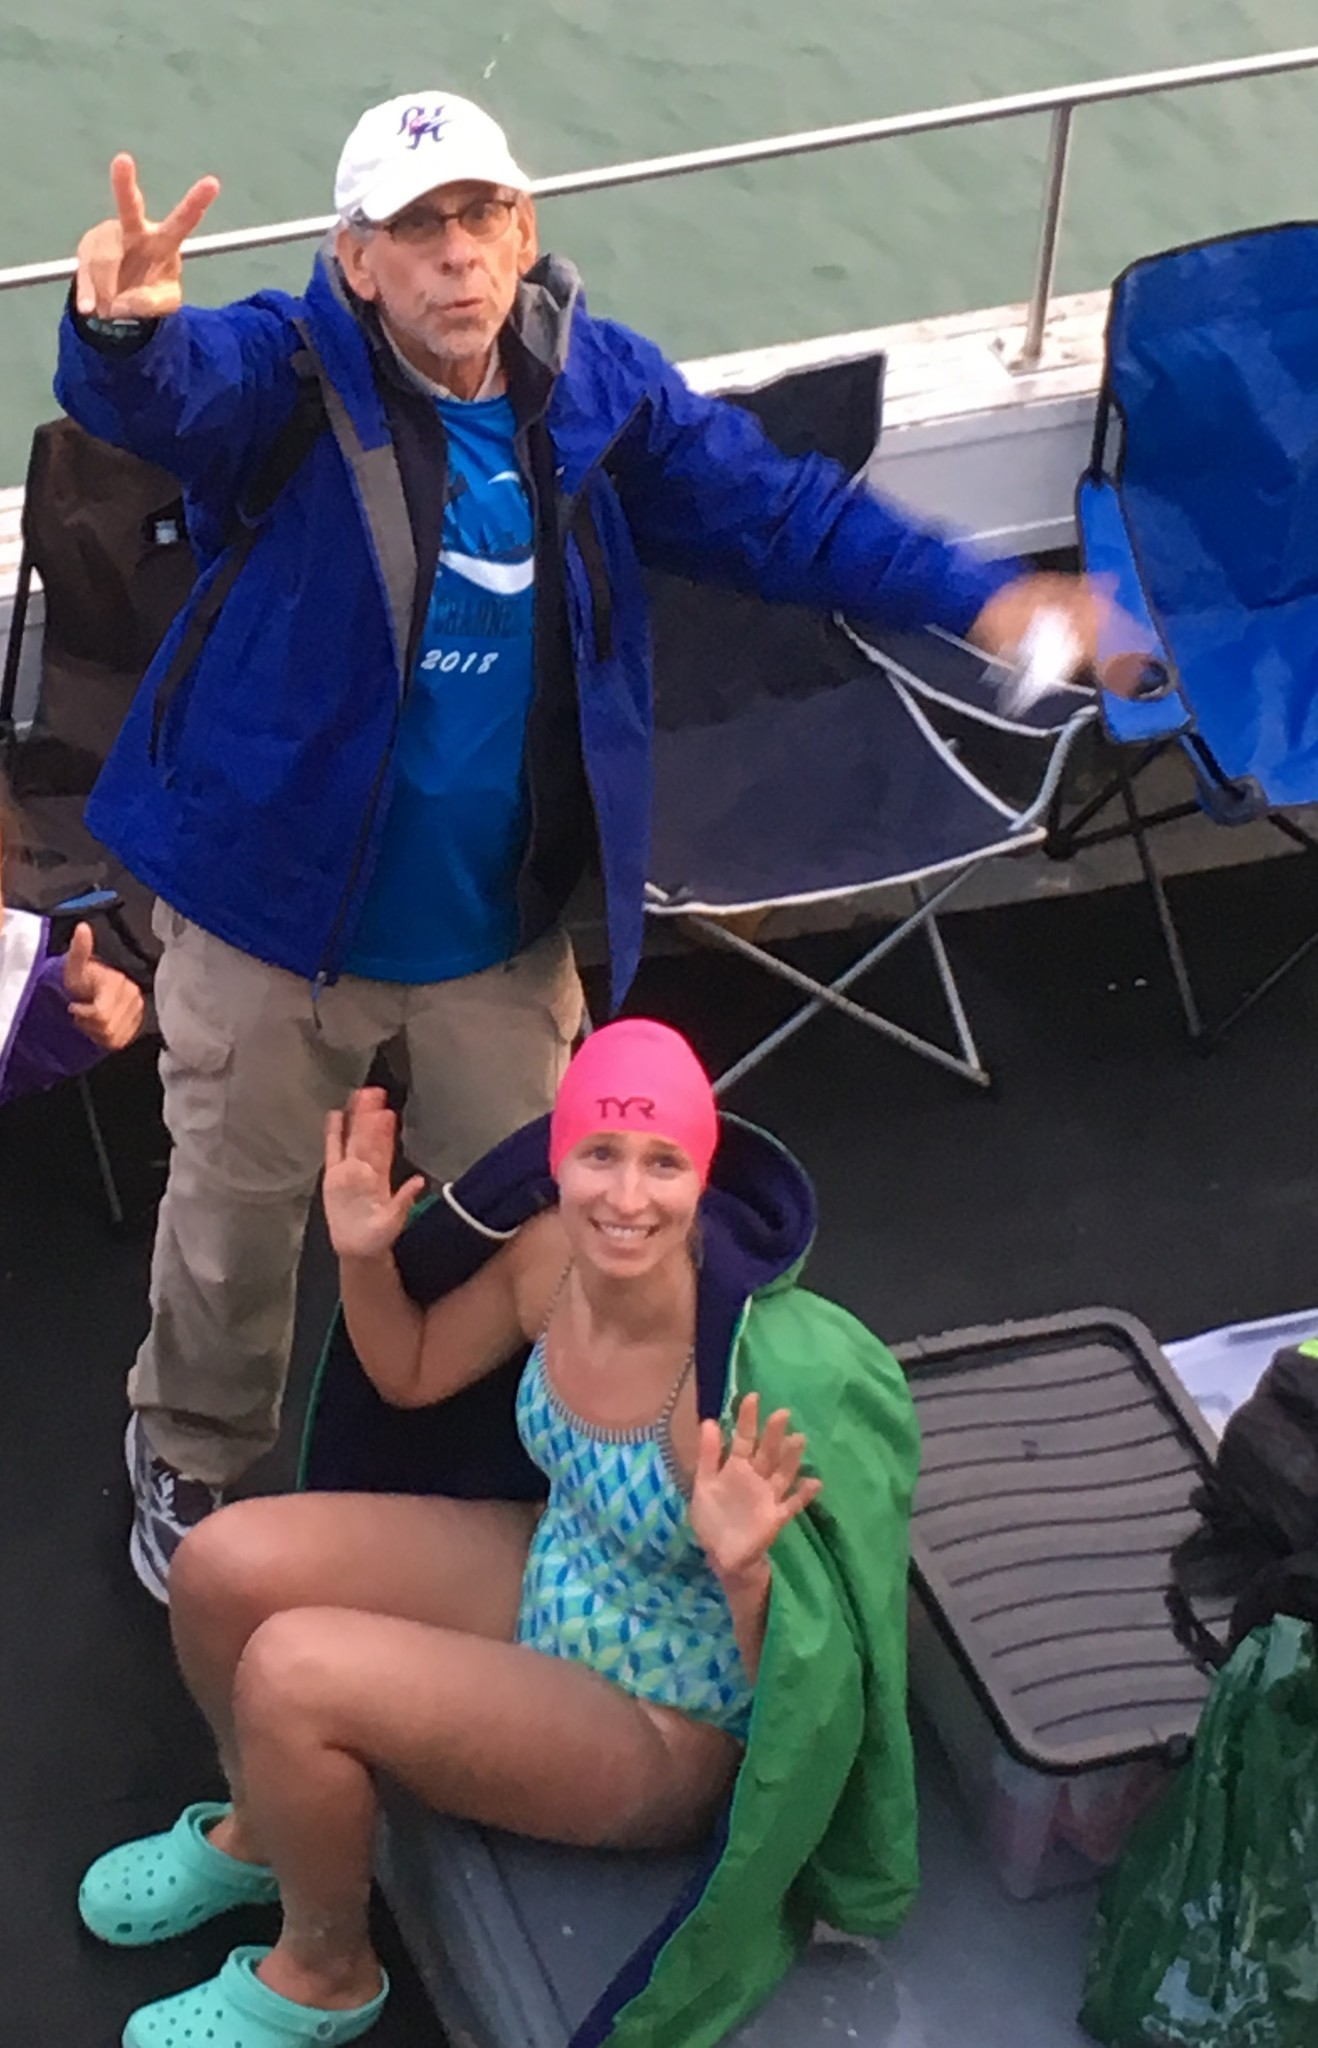 Melanie Kaplan and her father, Robert, are shown aboard the support boat before her crossing.